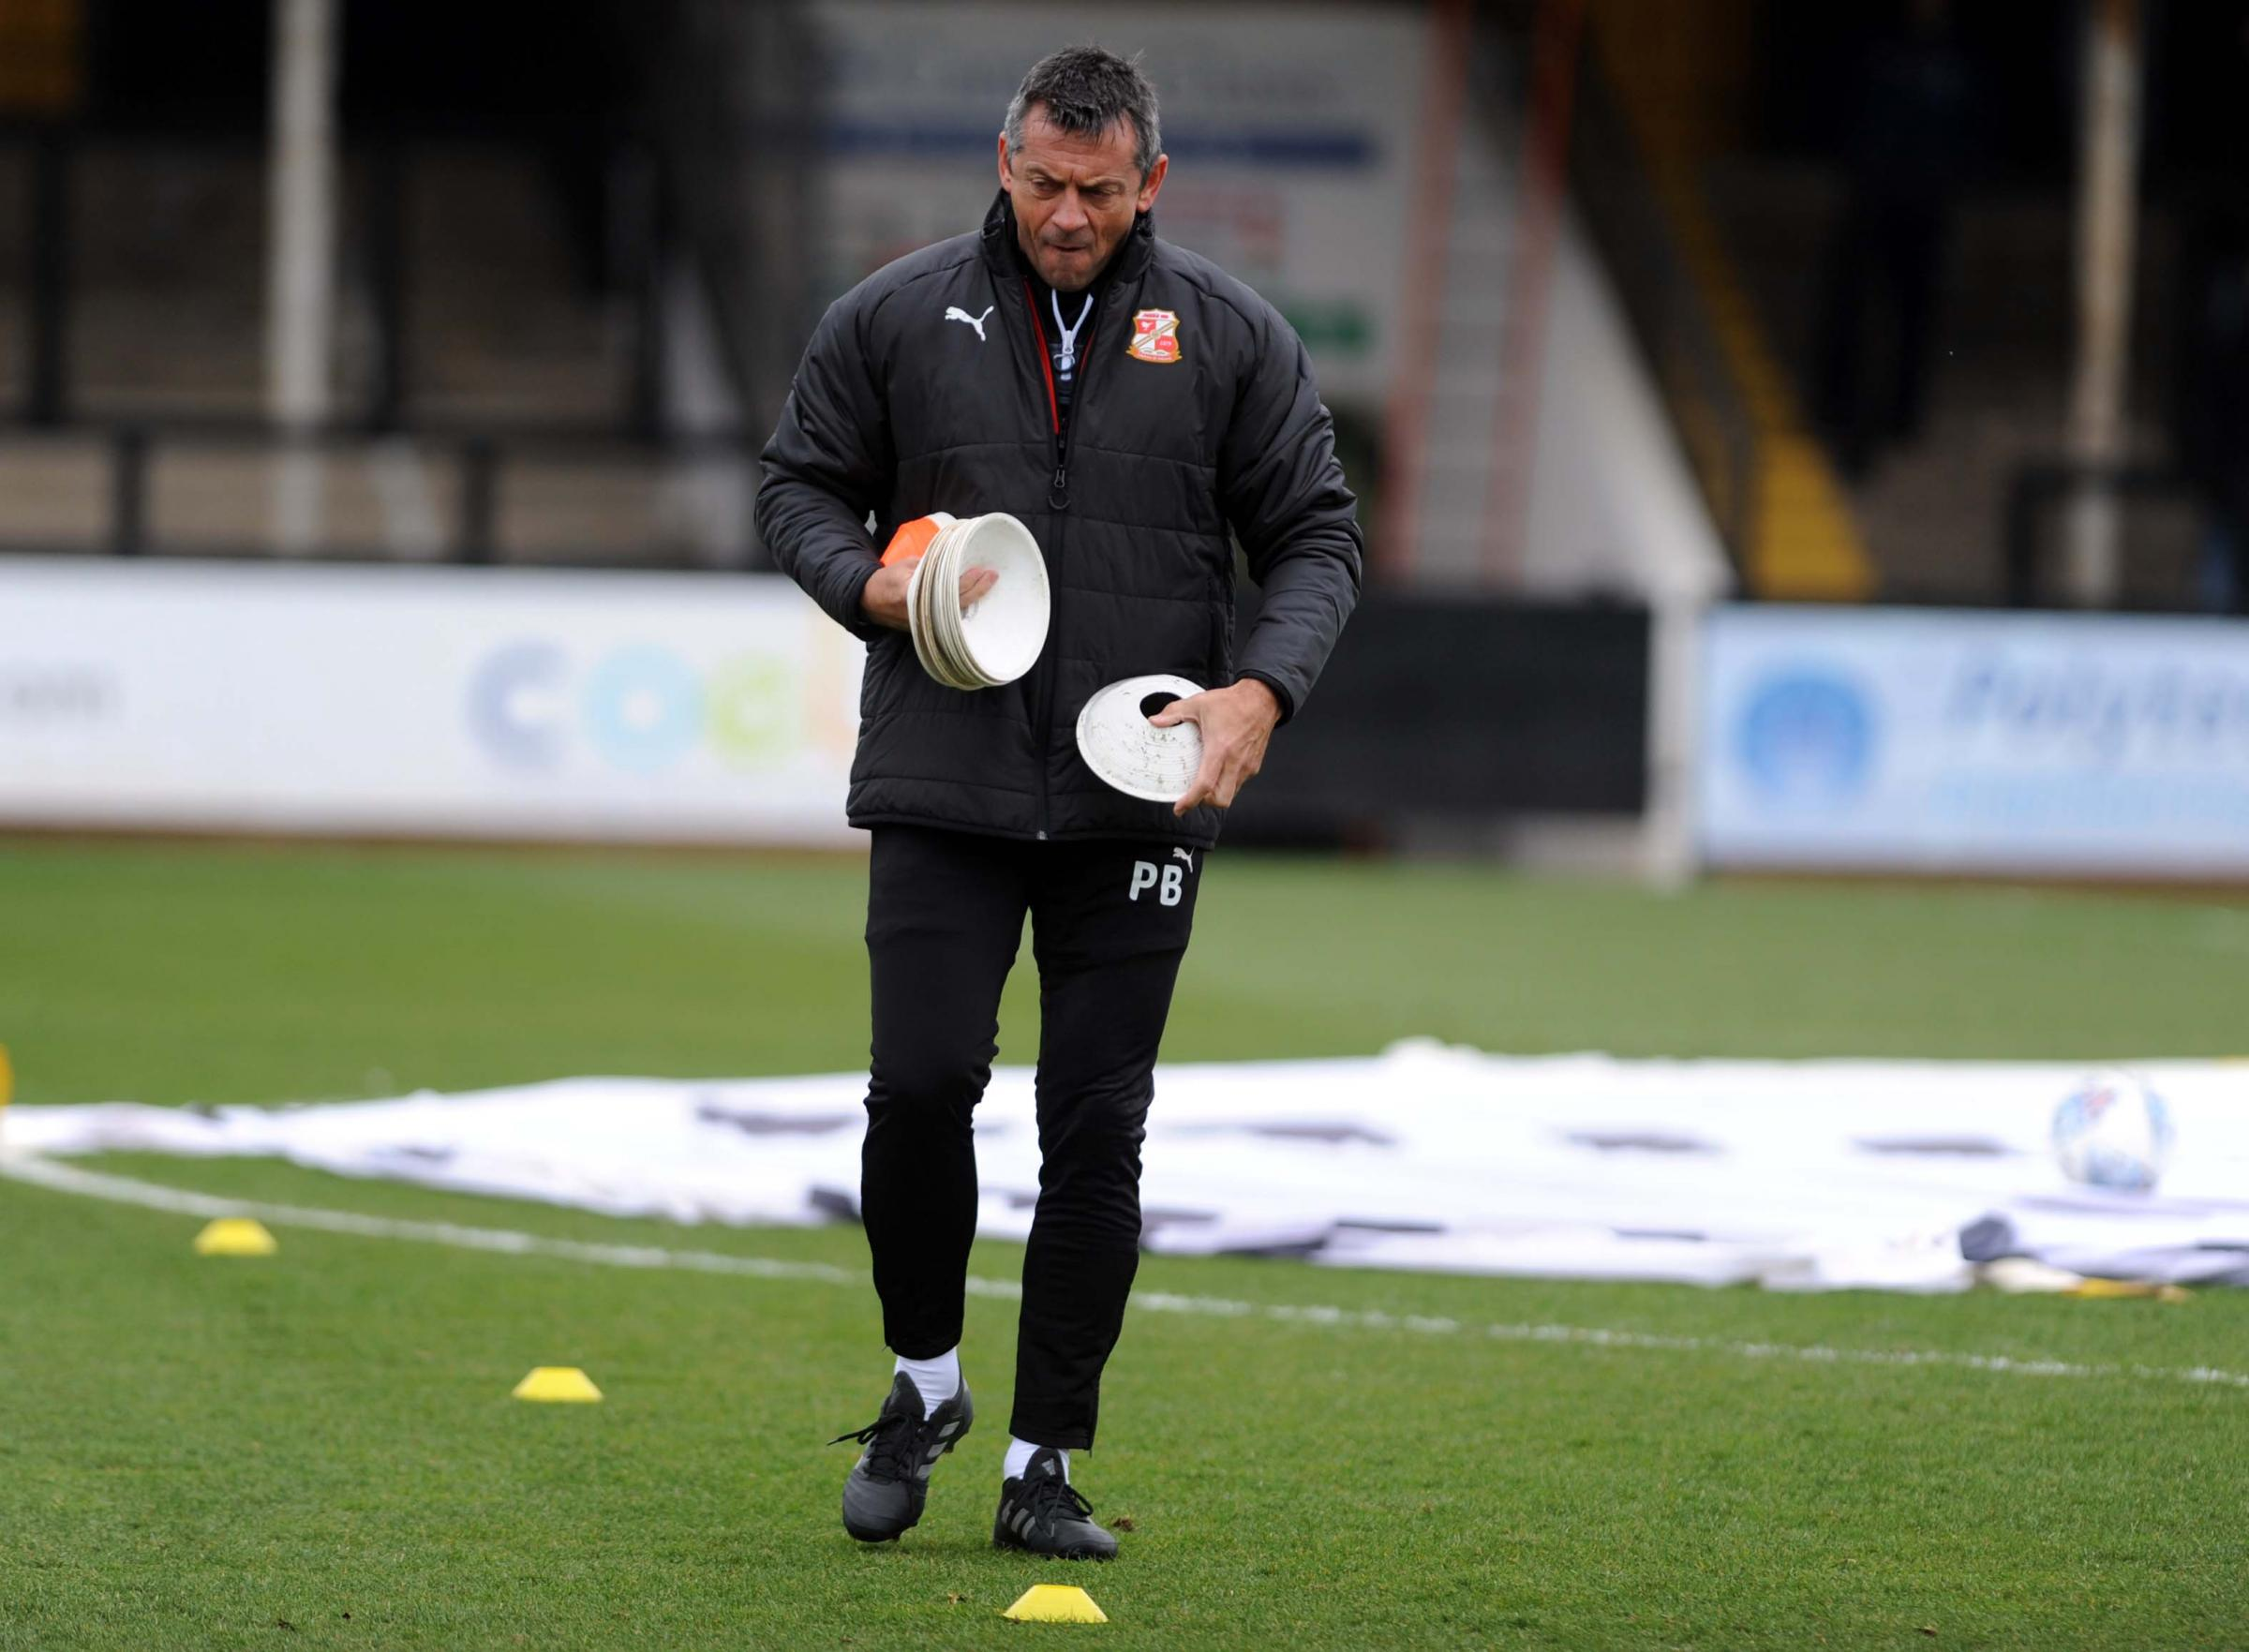 Swindon Town boss Phil Brown is ready to make key changes in the transfer window.